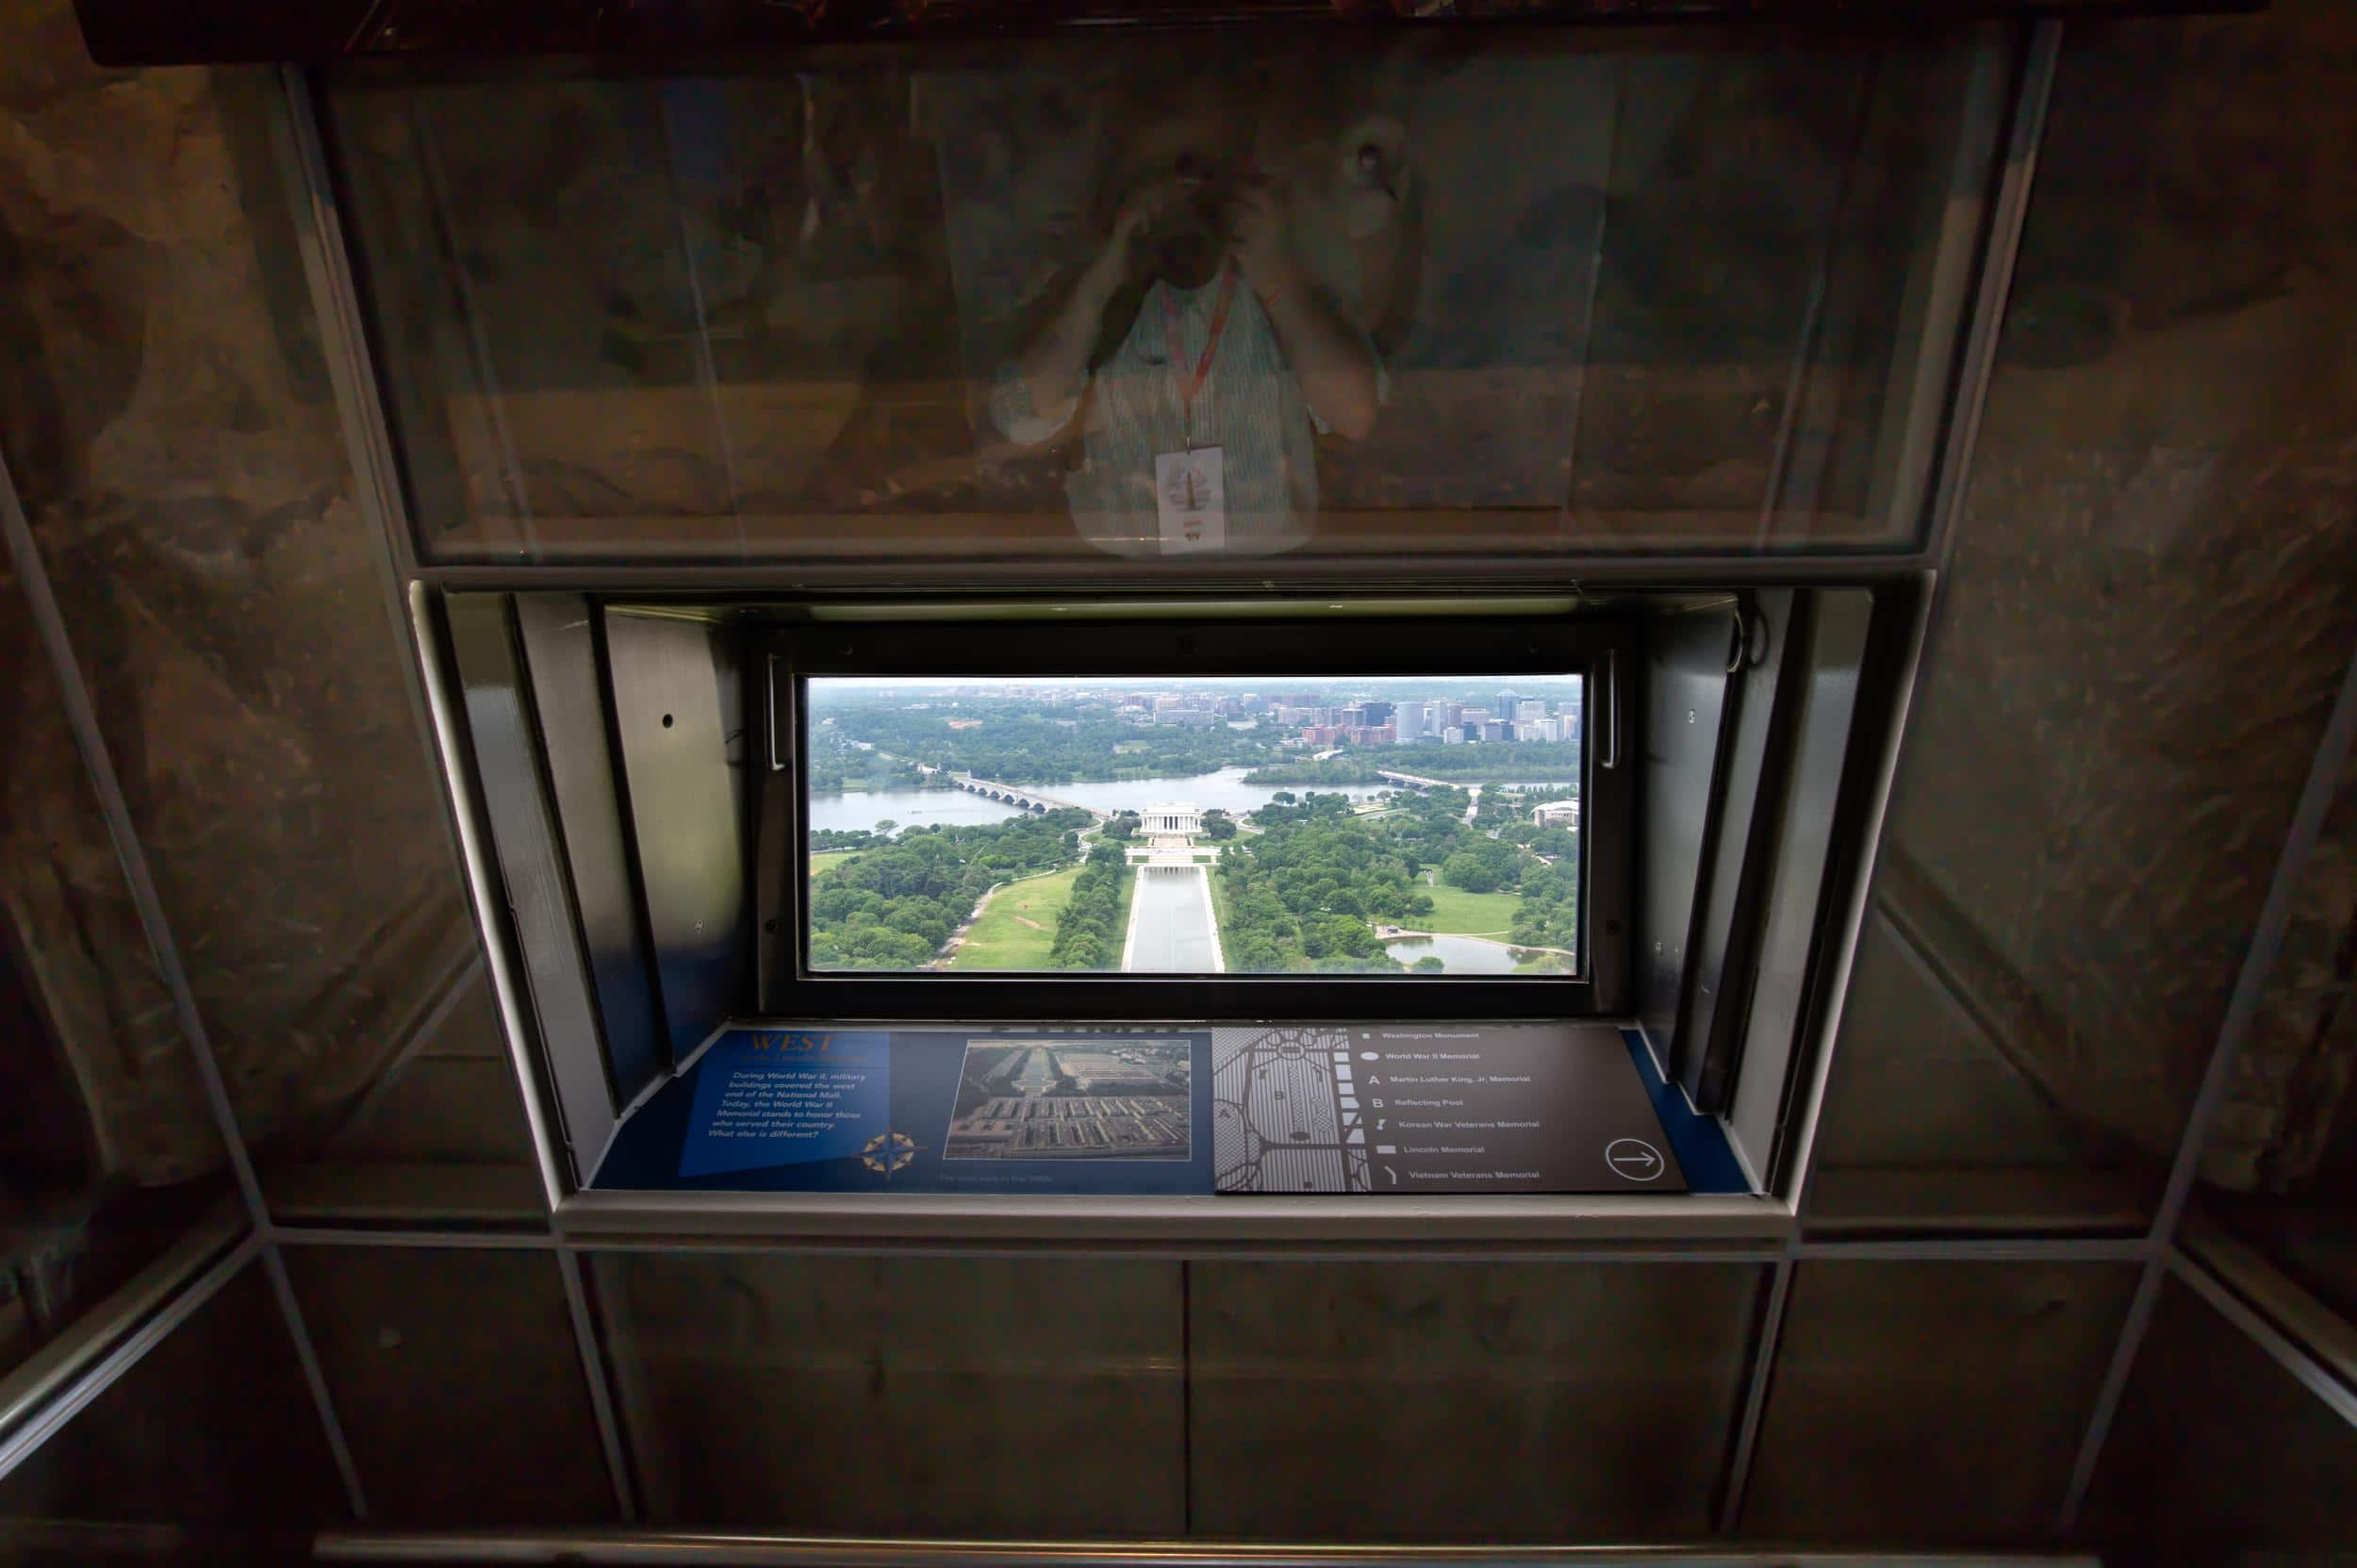 The Lincoln Memorial as seen from the observation level of the Washington Monument.